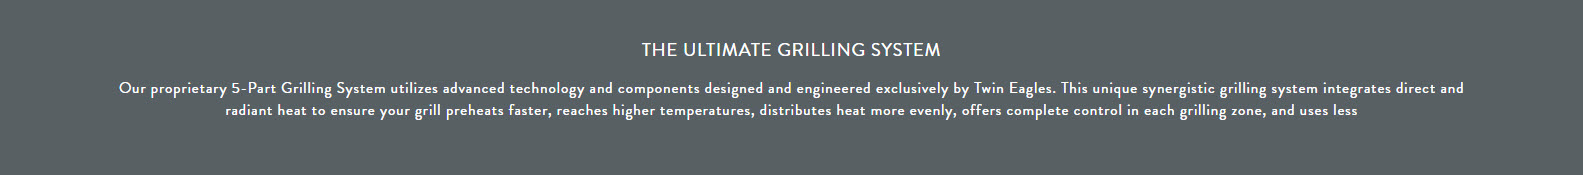 Twin Eagles - The Ultimate Grilling System